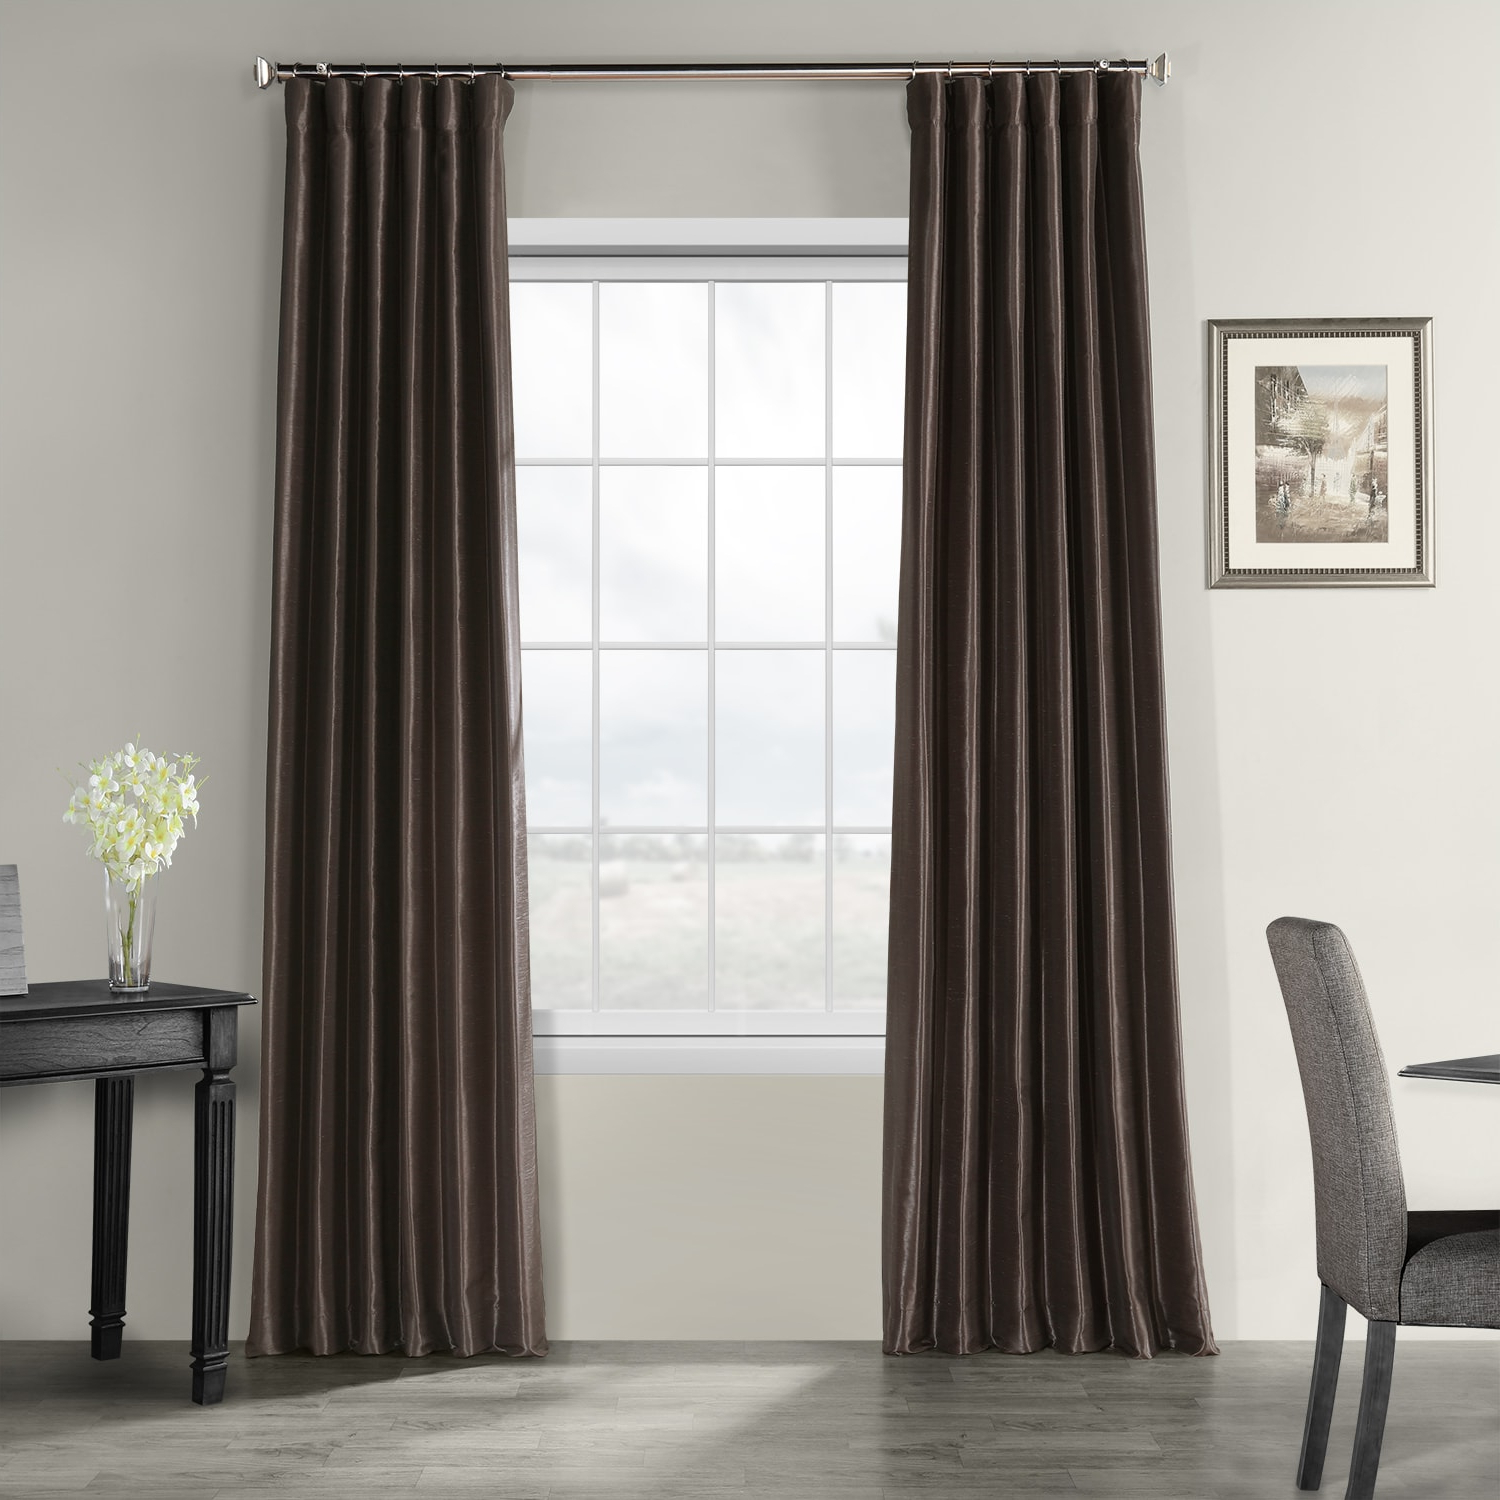 Preferred Off White Vintage Faux Textured Silk Curtains Pertaining To Urban Grey Vintage Textured Faux Dupioni Silk Curtain (View 18 of 20)